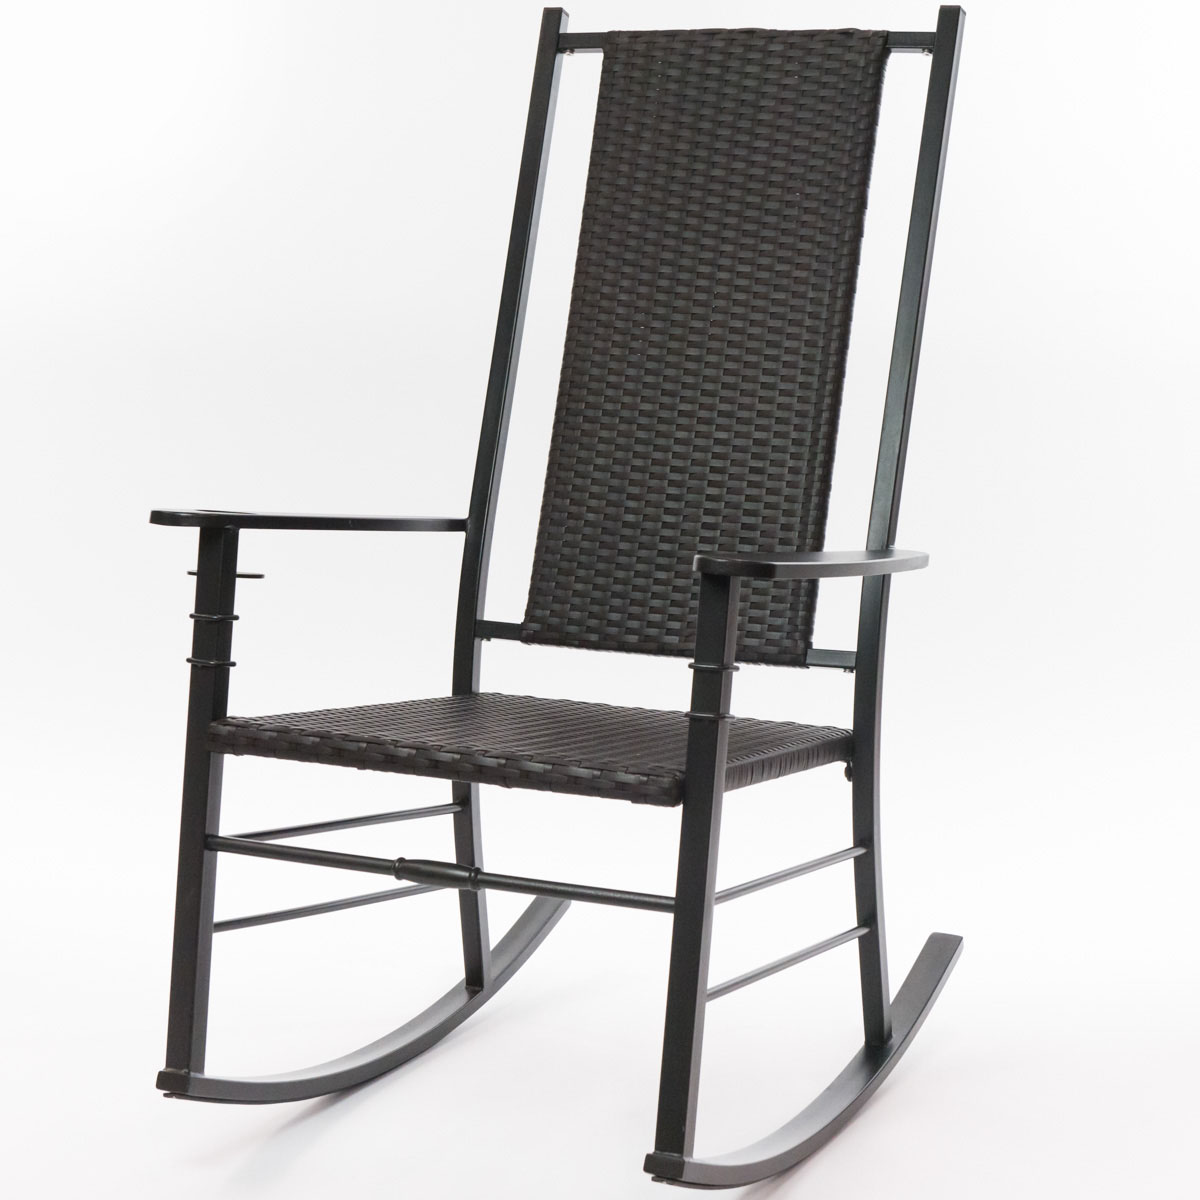 Magnificent Black Palm Harbor Wicker Rocking Chair Pabps2019 Chair Design Images Pabps2019Com